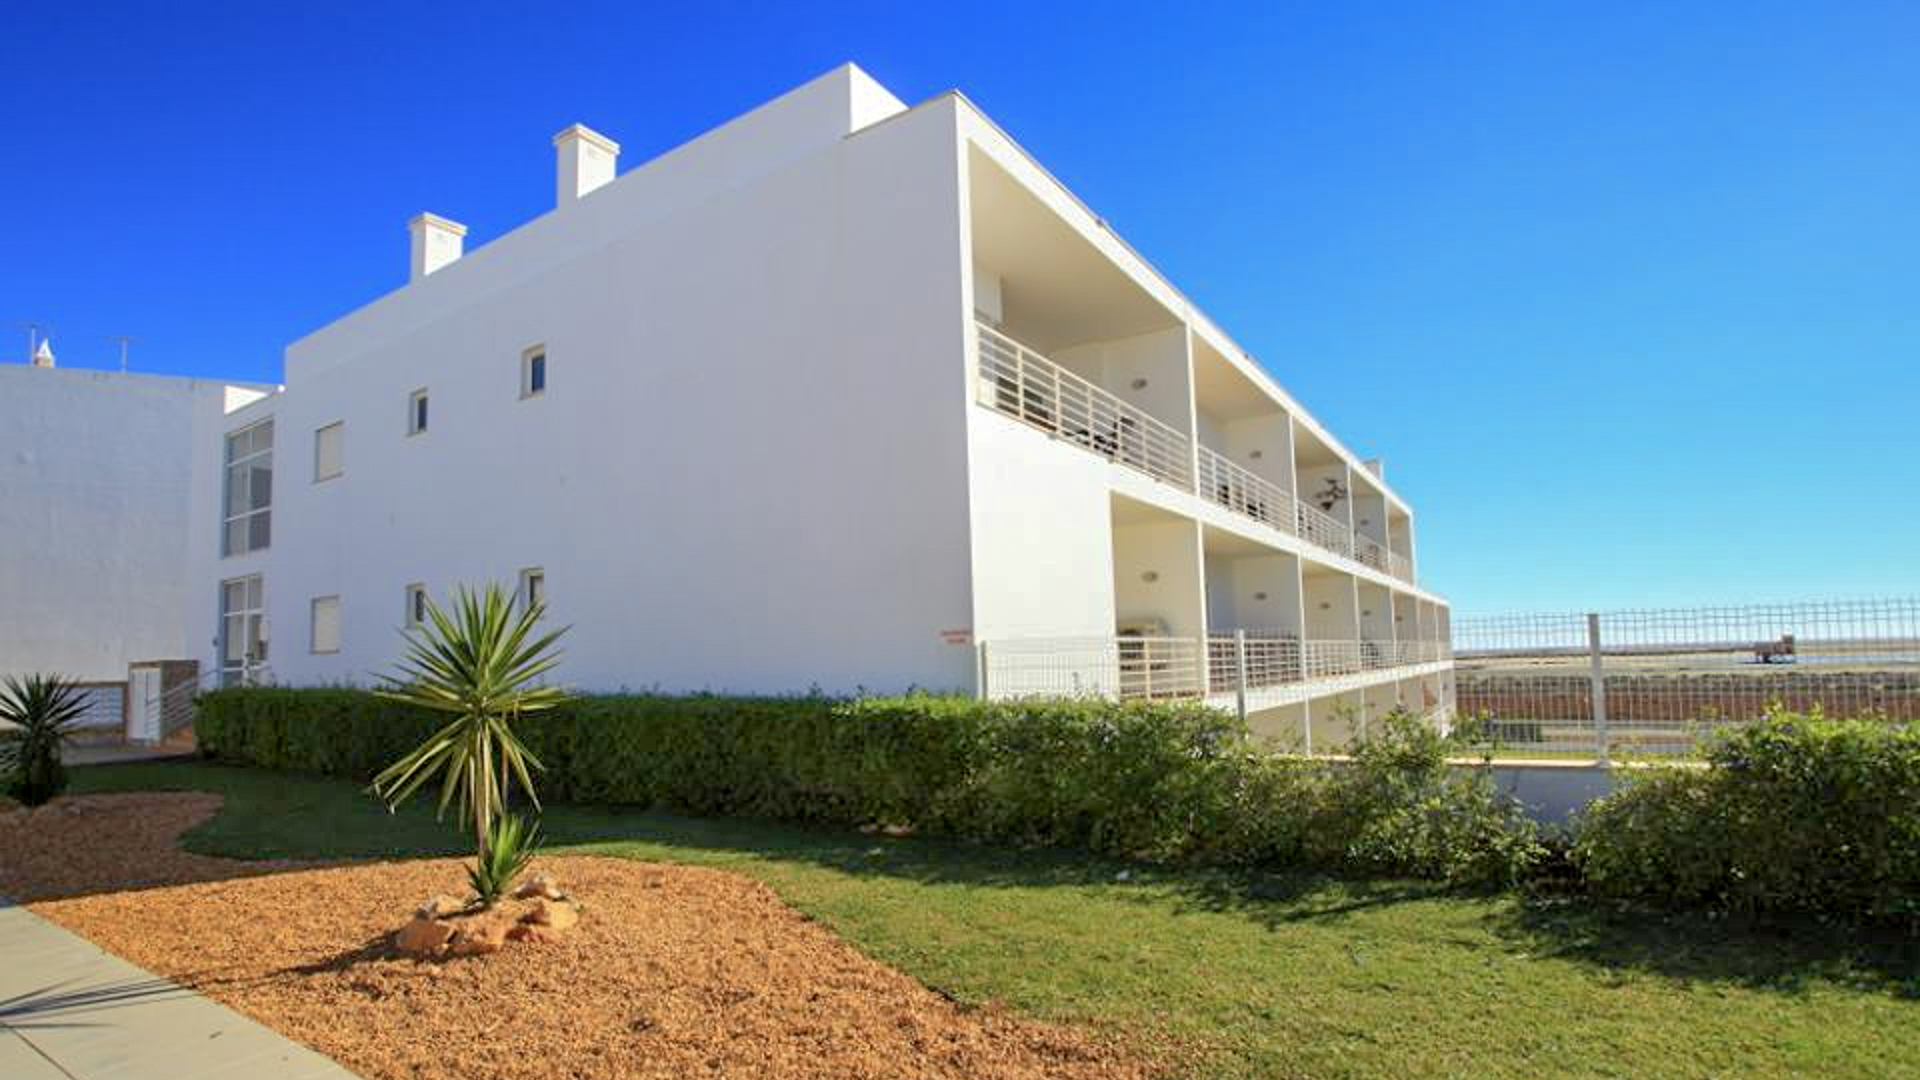 Quality 2 Bedroom Apartment in Fuzeta, Close to Olhão with Sea Views | S2665